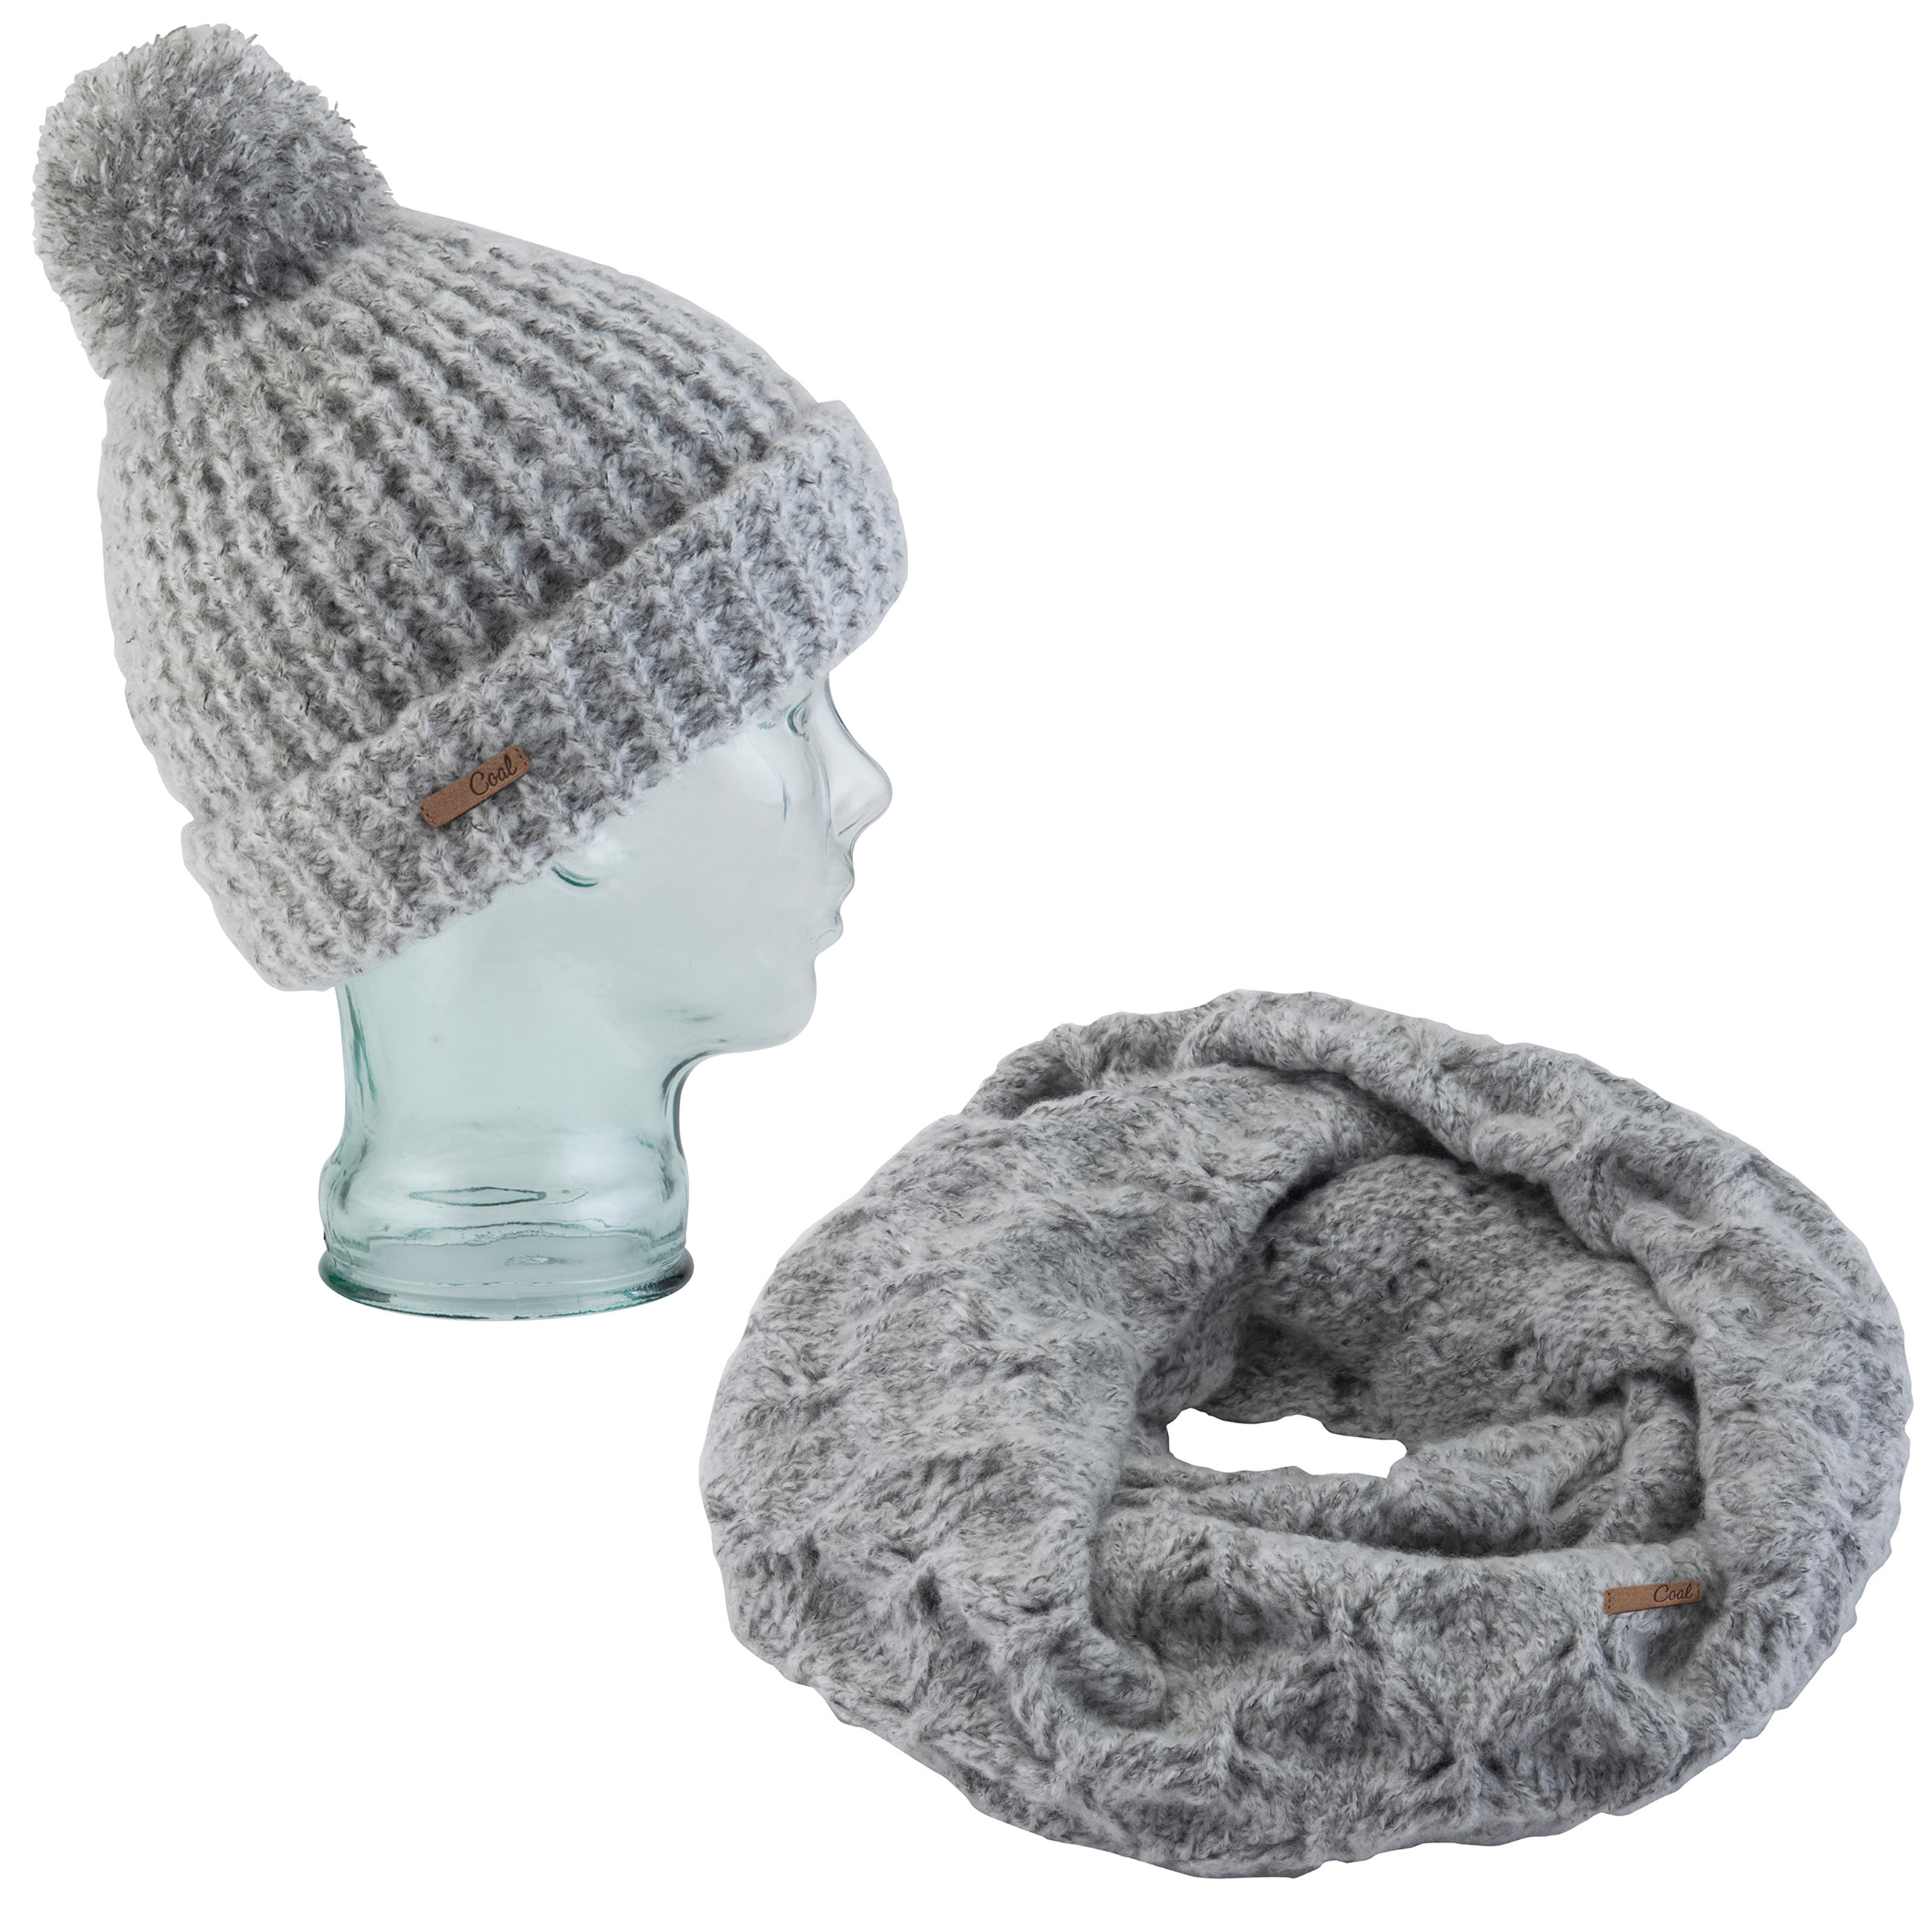 Details about Coal Kate Beanie Waffle Knit And Coal The Madison Scarf  Eternity Heather Grey 54a02618a8b1